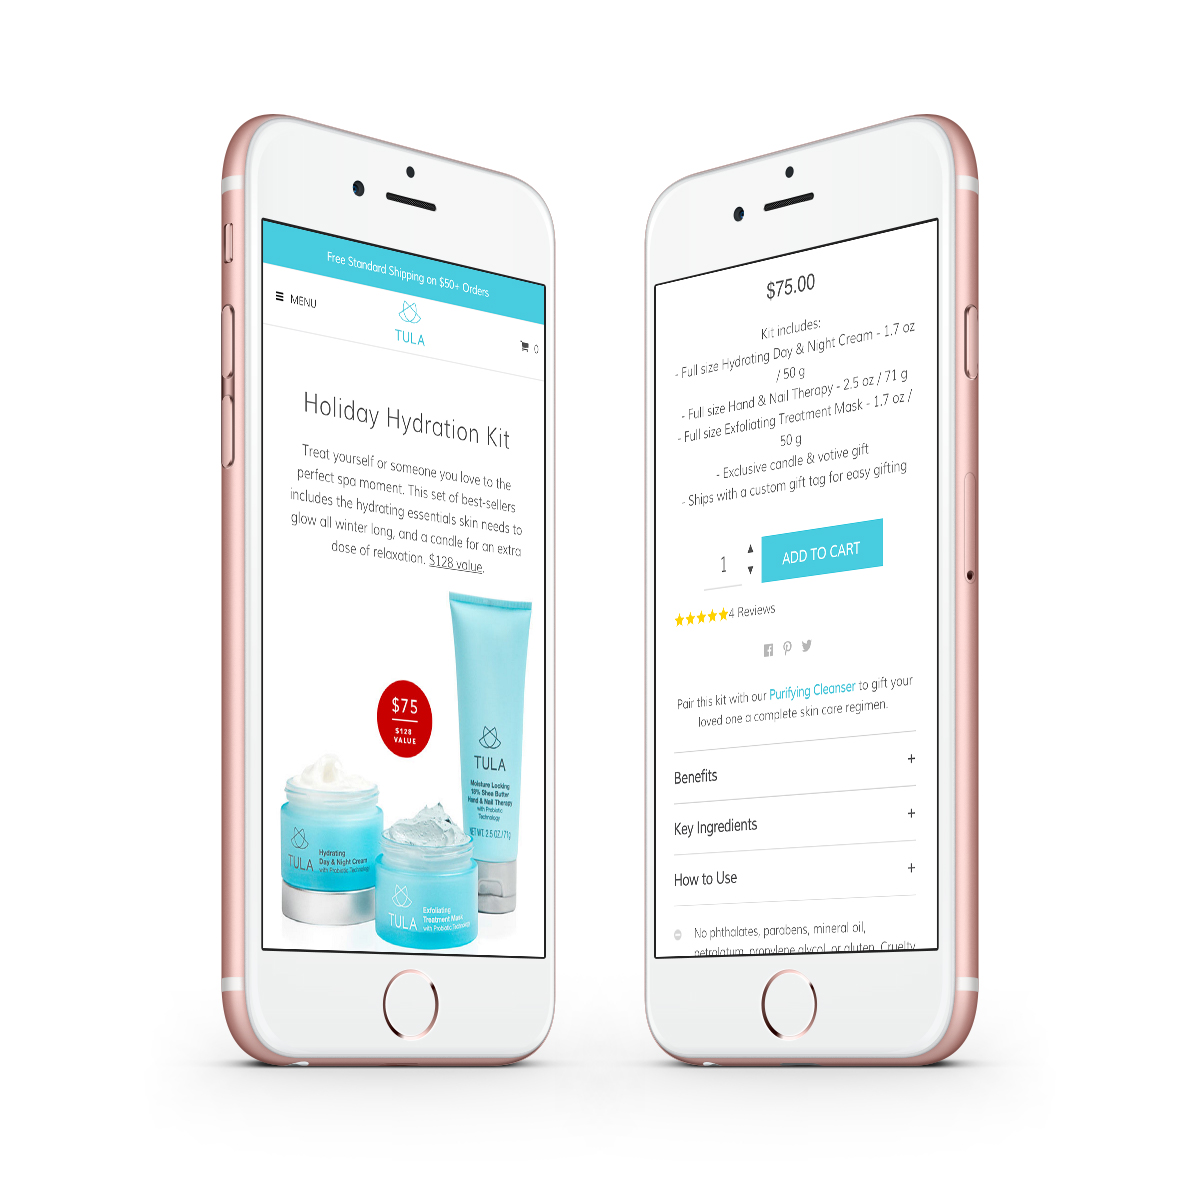 TULA product page in device